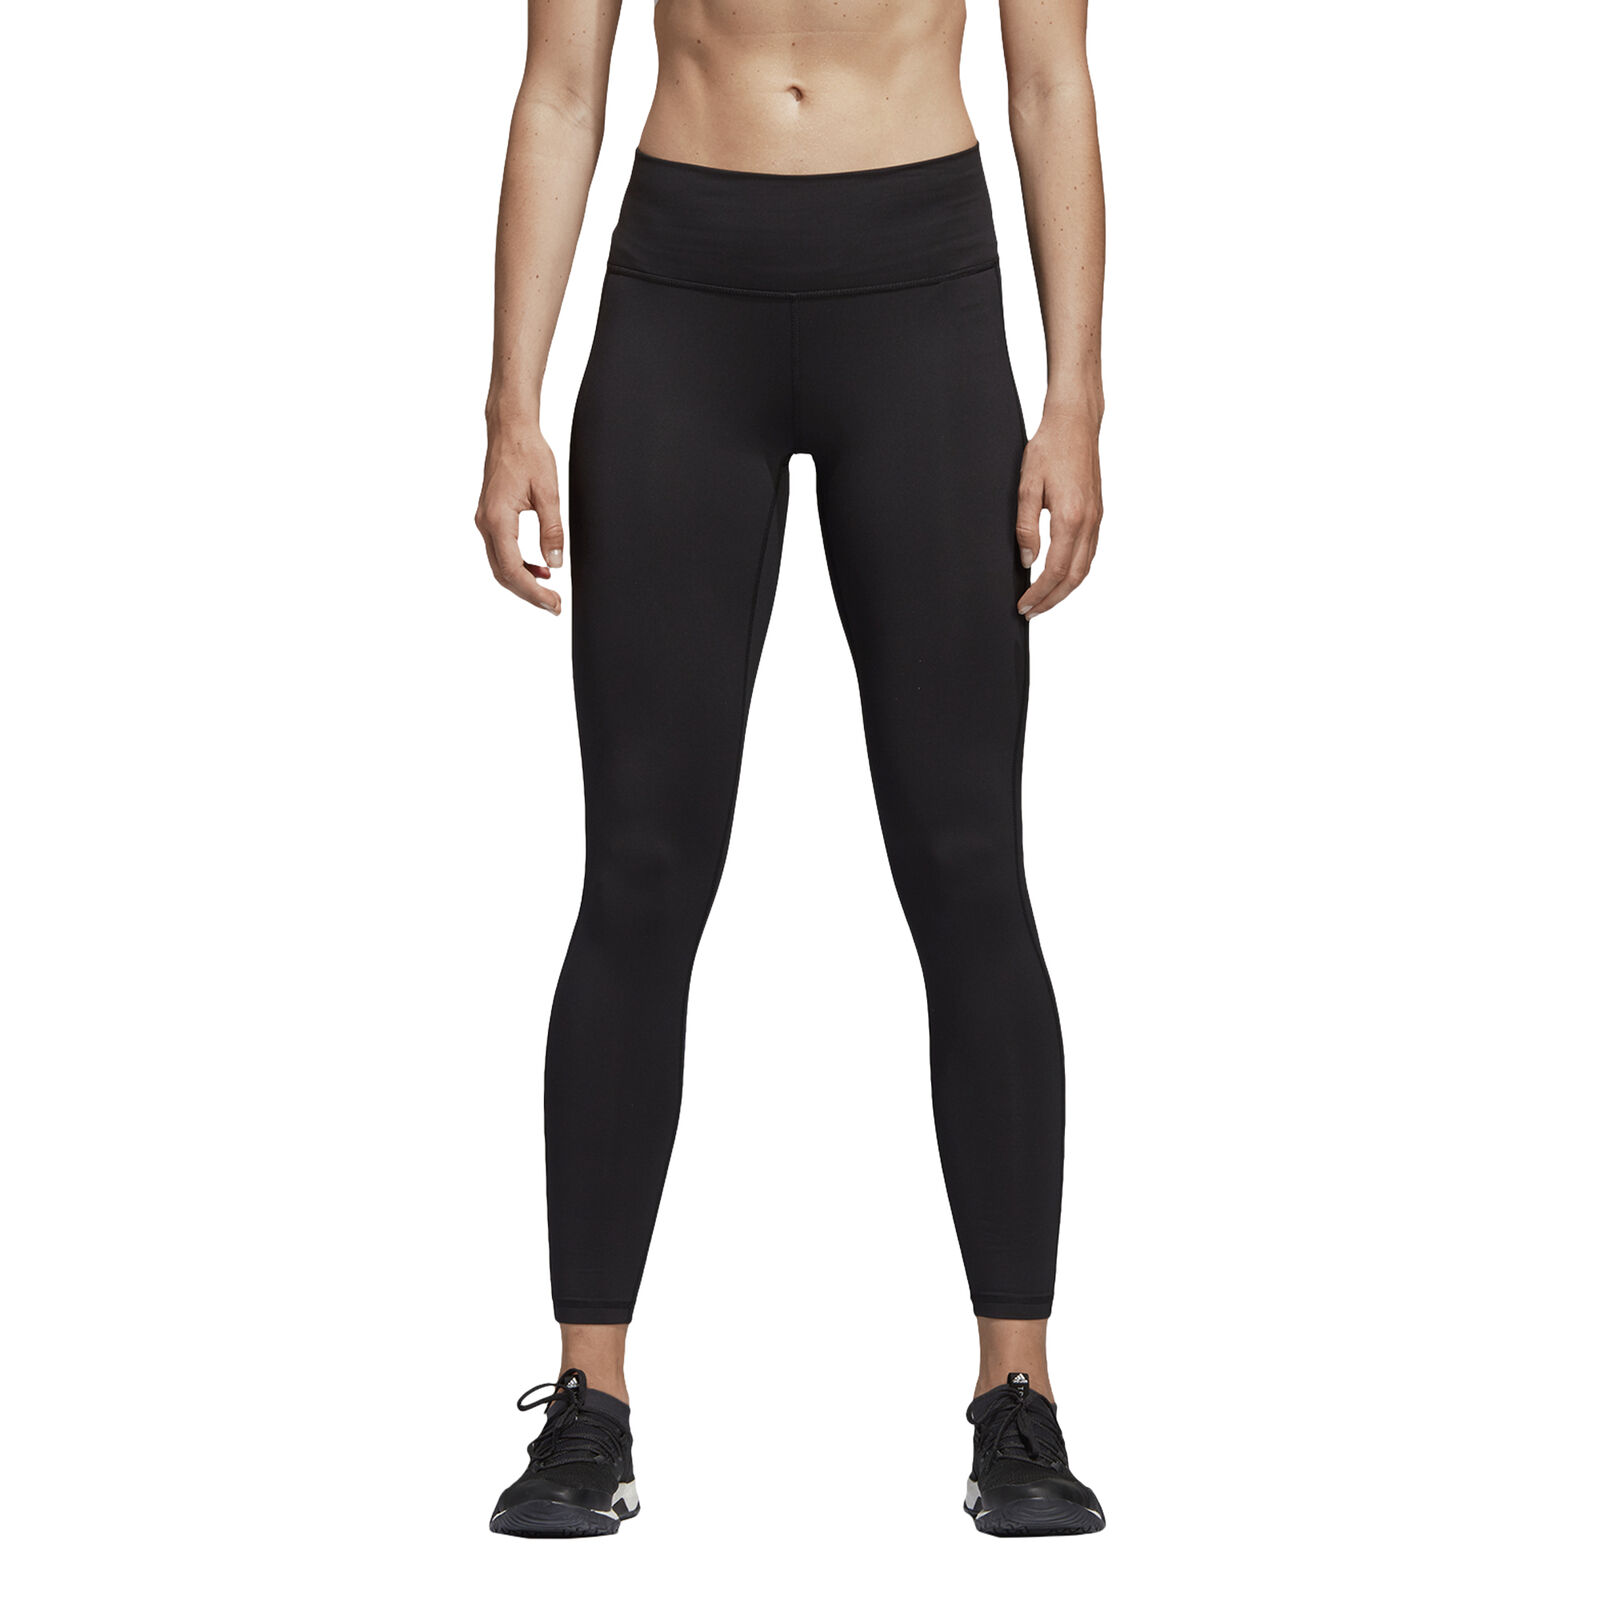 Adidas Women's Sports Pants Believe This High Soft Ladies Tight Leggings